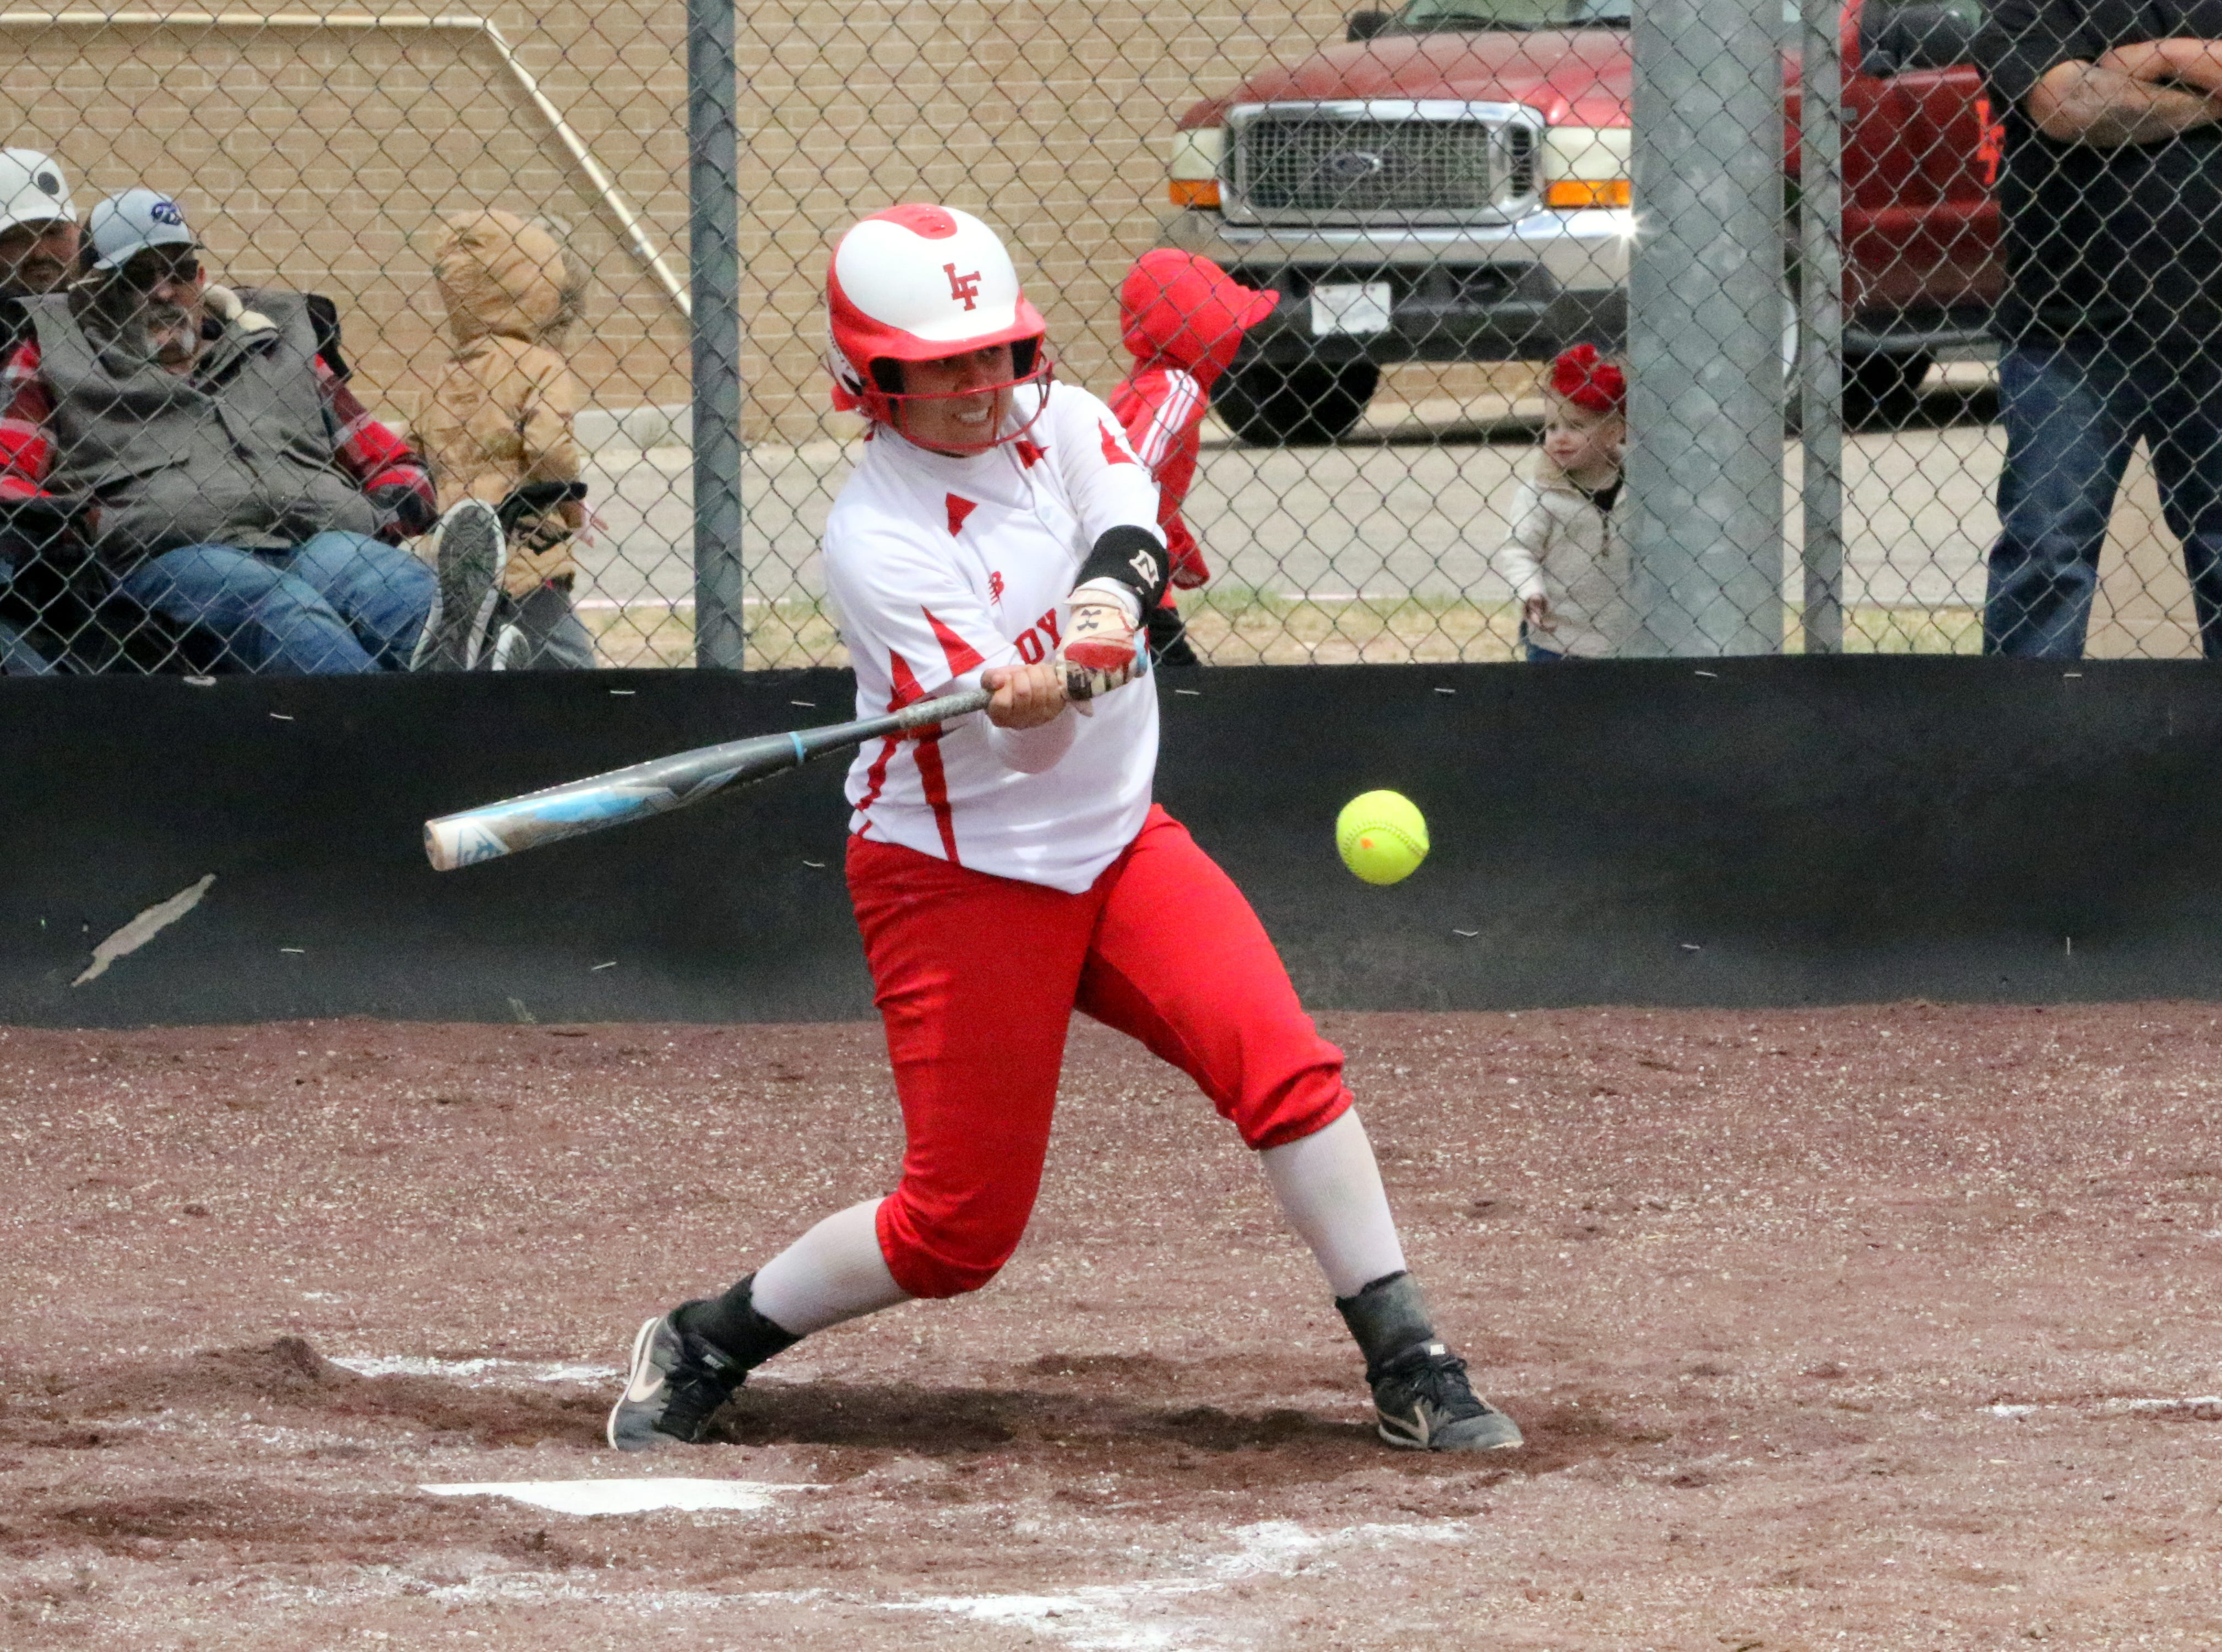 Angellica Villegas connects with a pitch during Game 1 of Saturday's doubleheader.